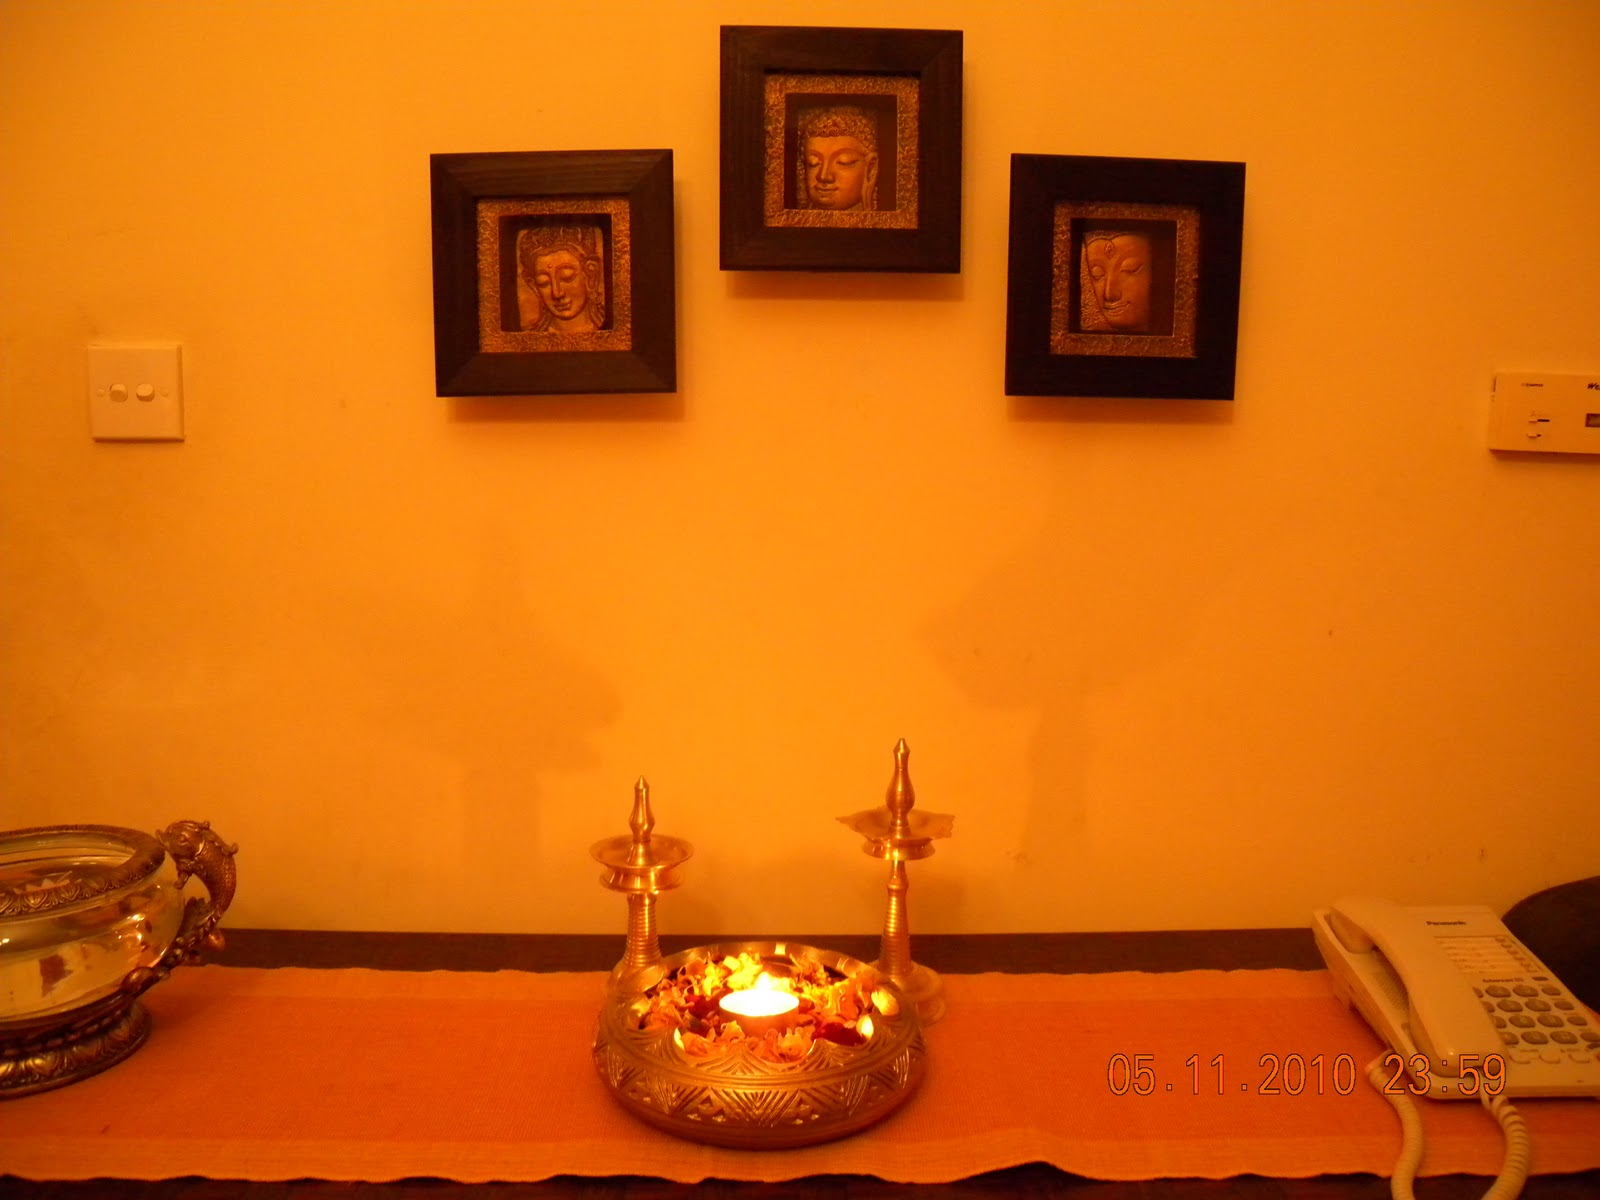 Ideas For Diwali Decoration At Home: Indian Home Decorations During Diwali, Diwali Home